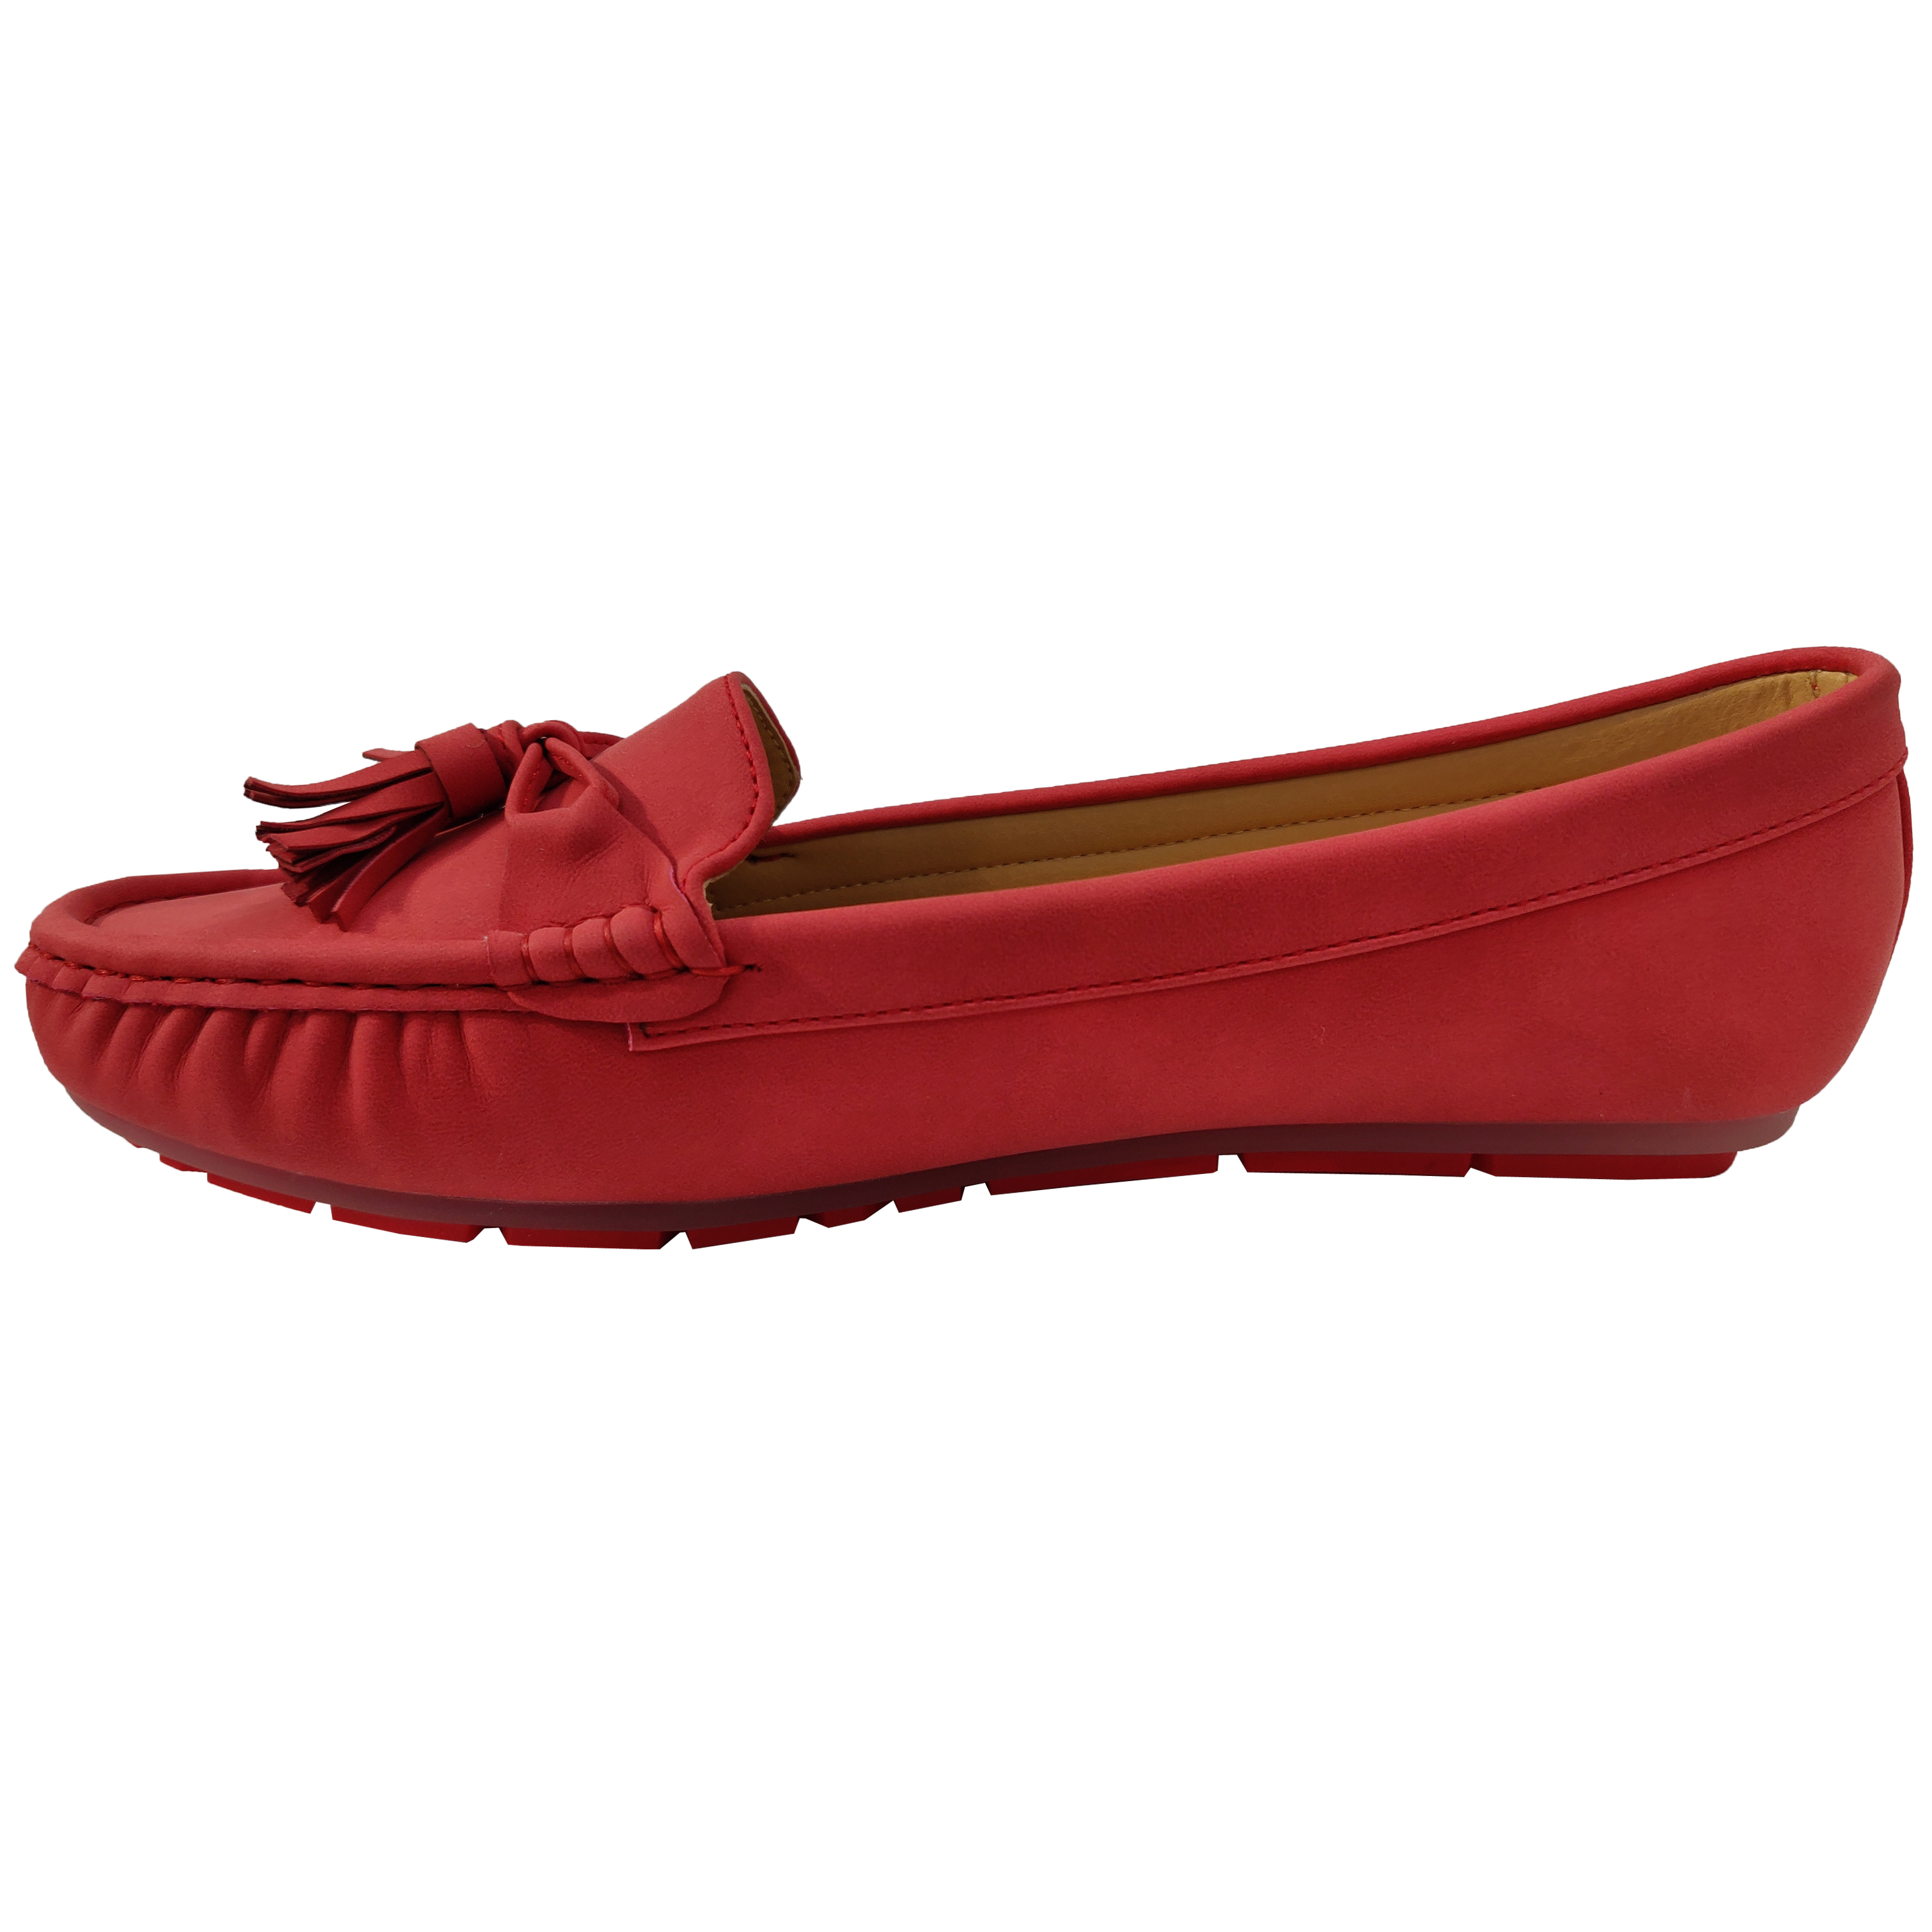 Ladies-Slip-On-Ballerina-Womens-Suede-Look-Pumps-Flat-Bow-Tassels-Shoes-Fashion thumbnail 21